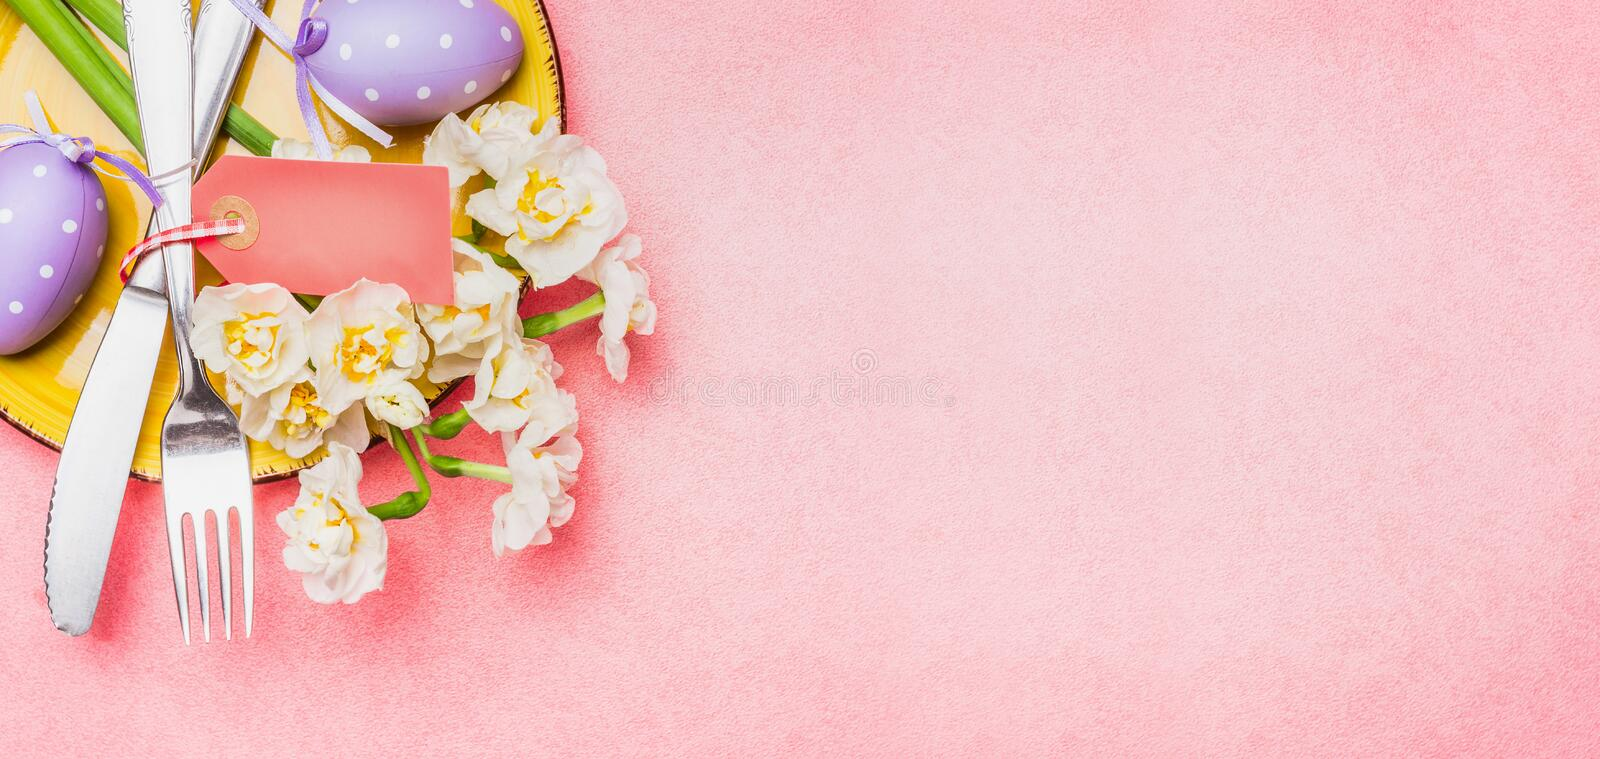 Easter table place setting with spring flowers,decor eggs and cutlery on light pink background, top view royalty free stock photo